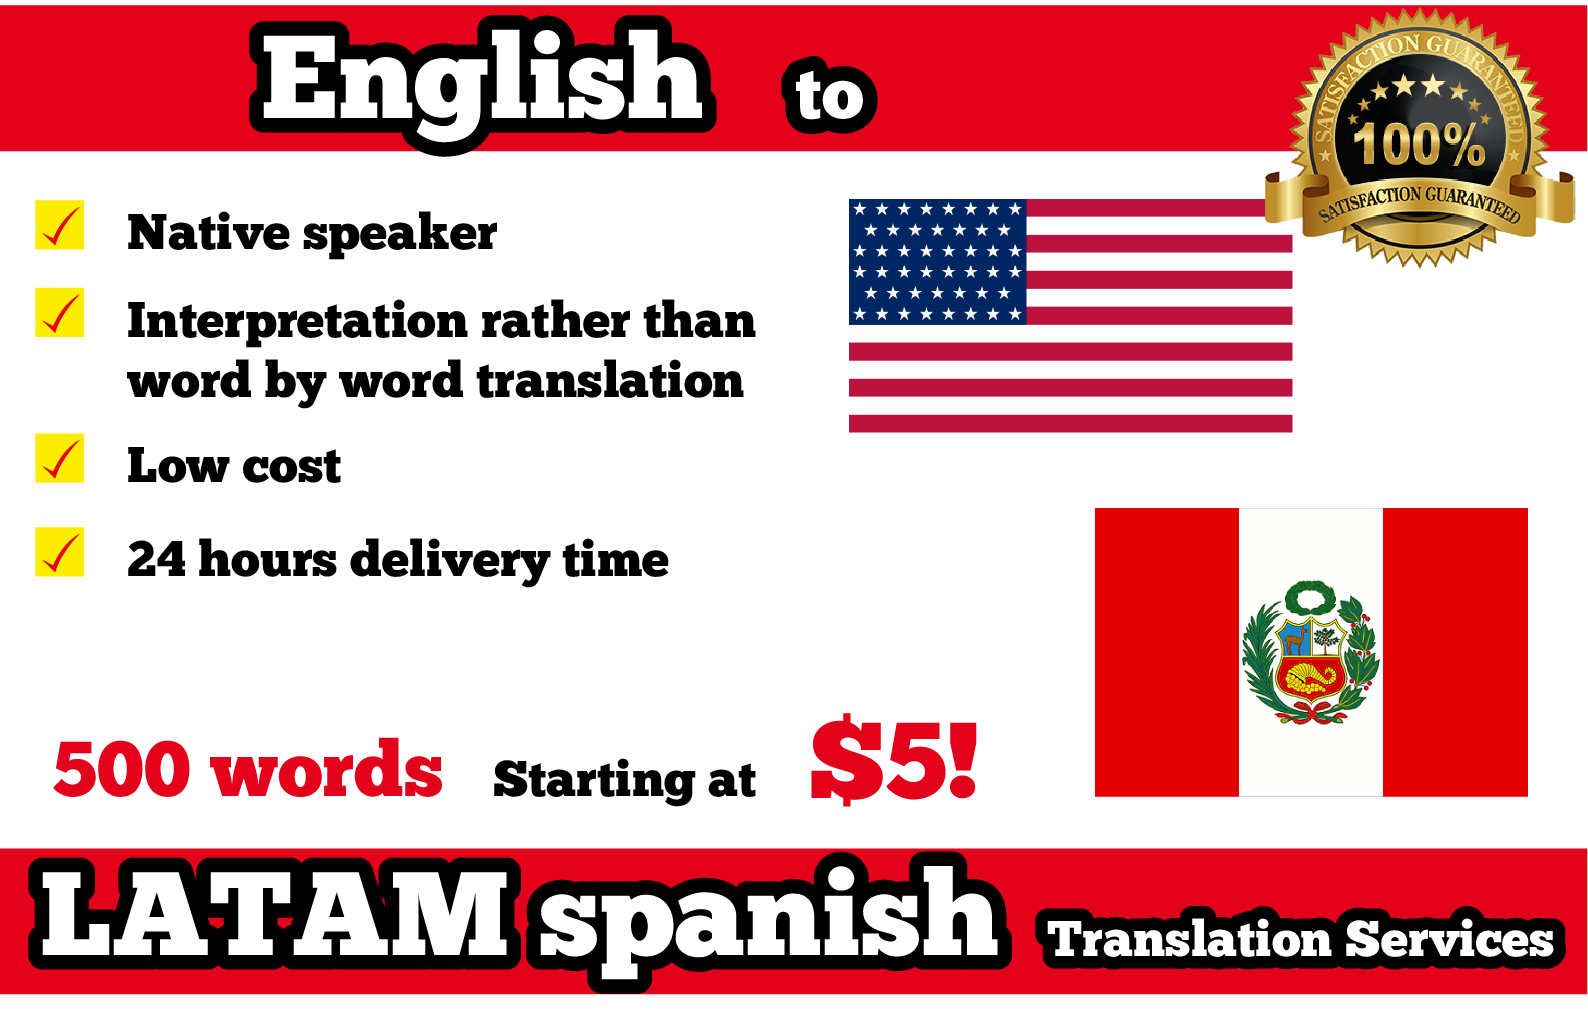 translate 500 words from english to latam spanish